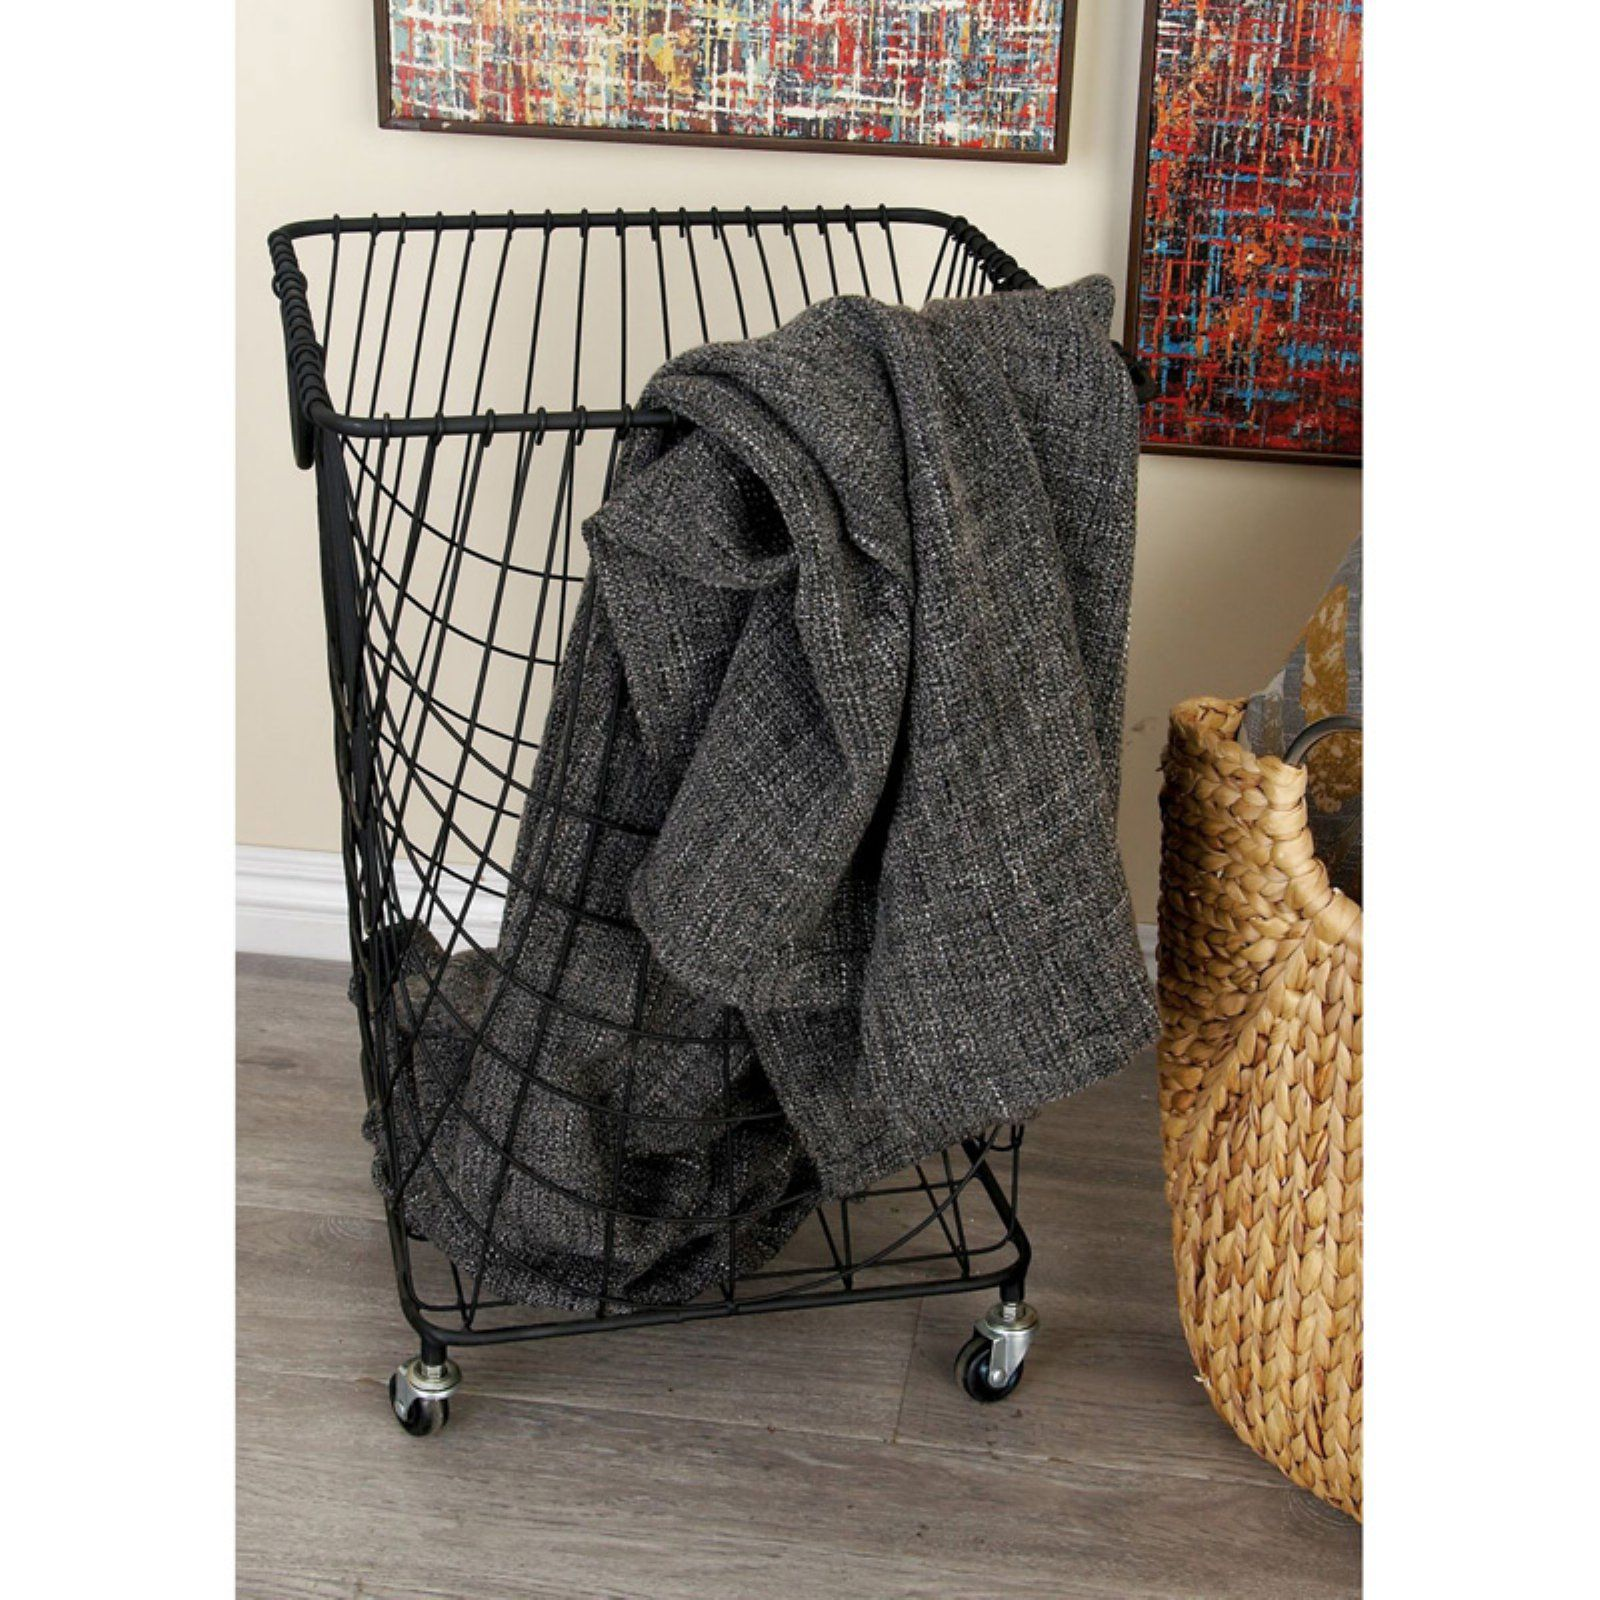 Decmode Metal Roll Hamper Basket Laundry Hamper Vintage Laundry Wicker Laundry Hamper